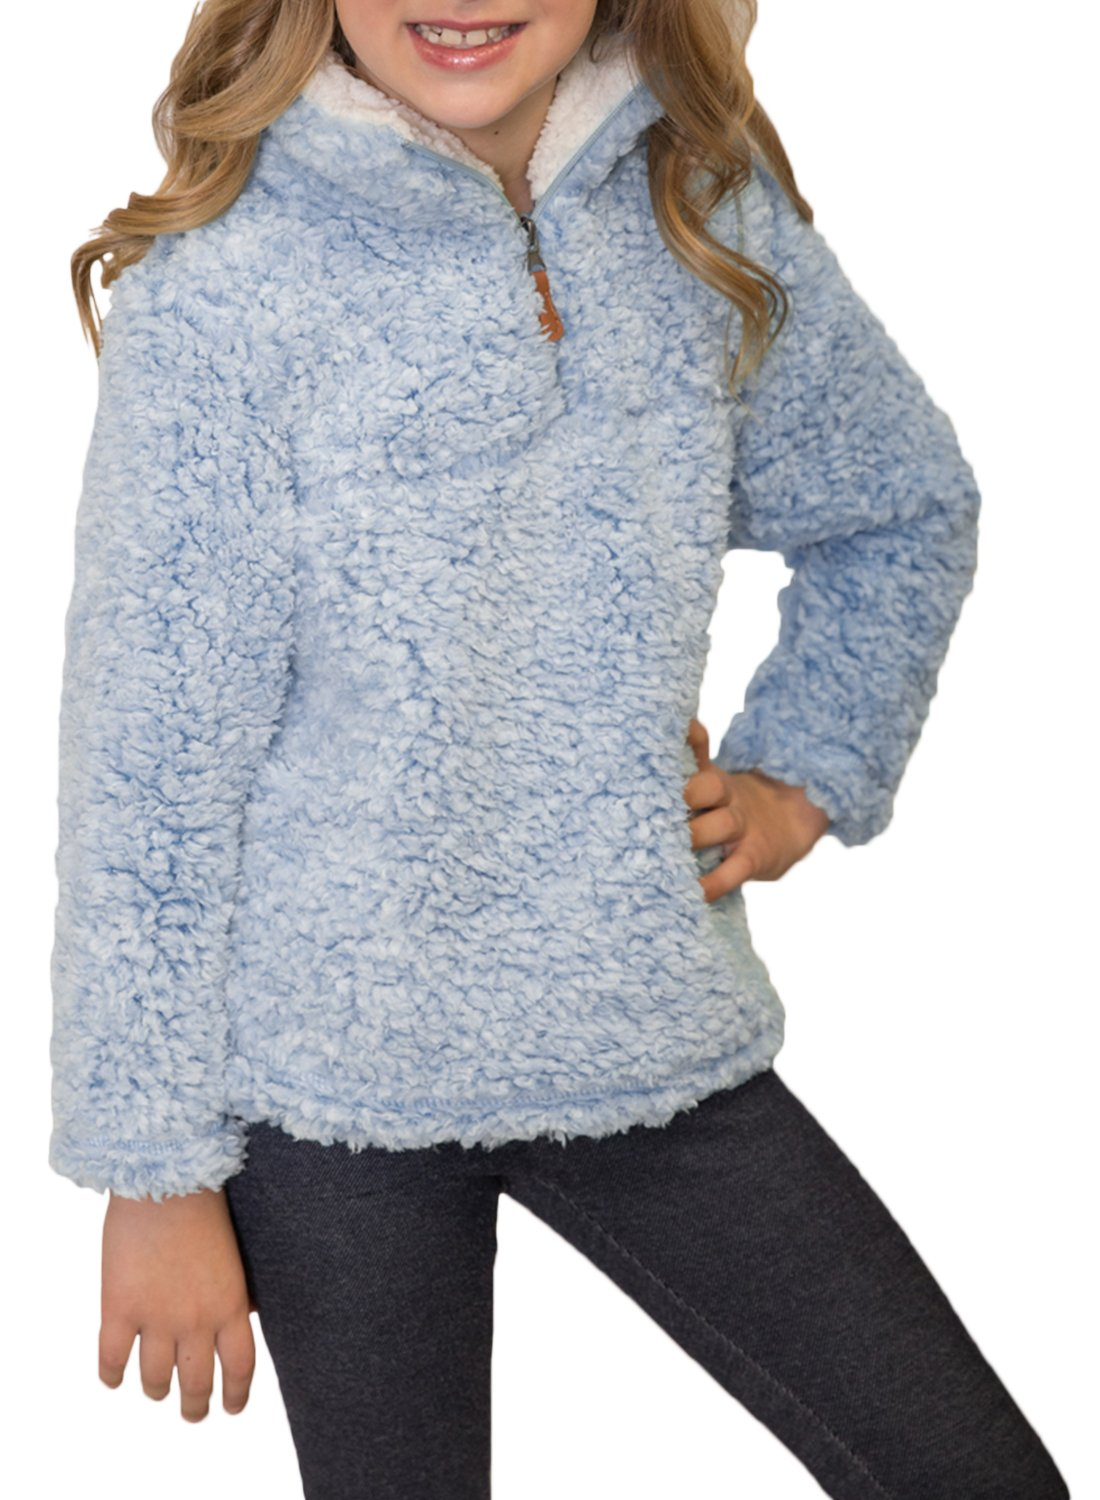 ZESICA Girls Kids 1/4 Zip Pebble Pile Sherpa Fleece Pullover Jacket Tops ZEDec13